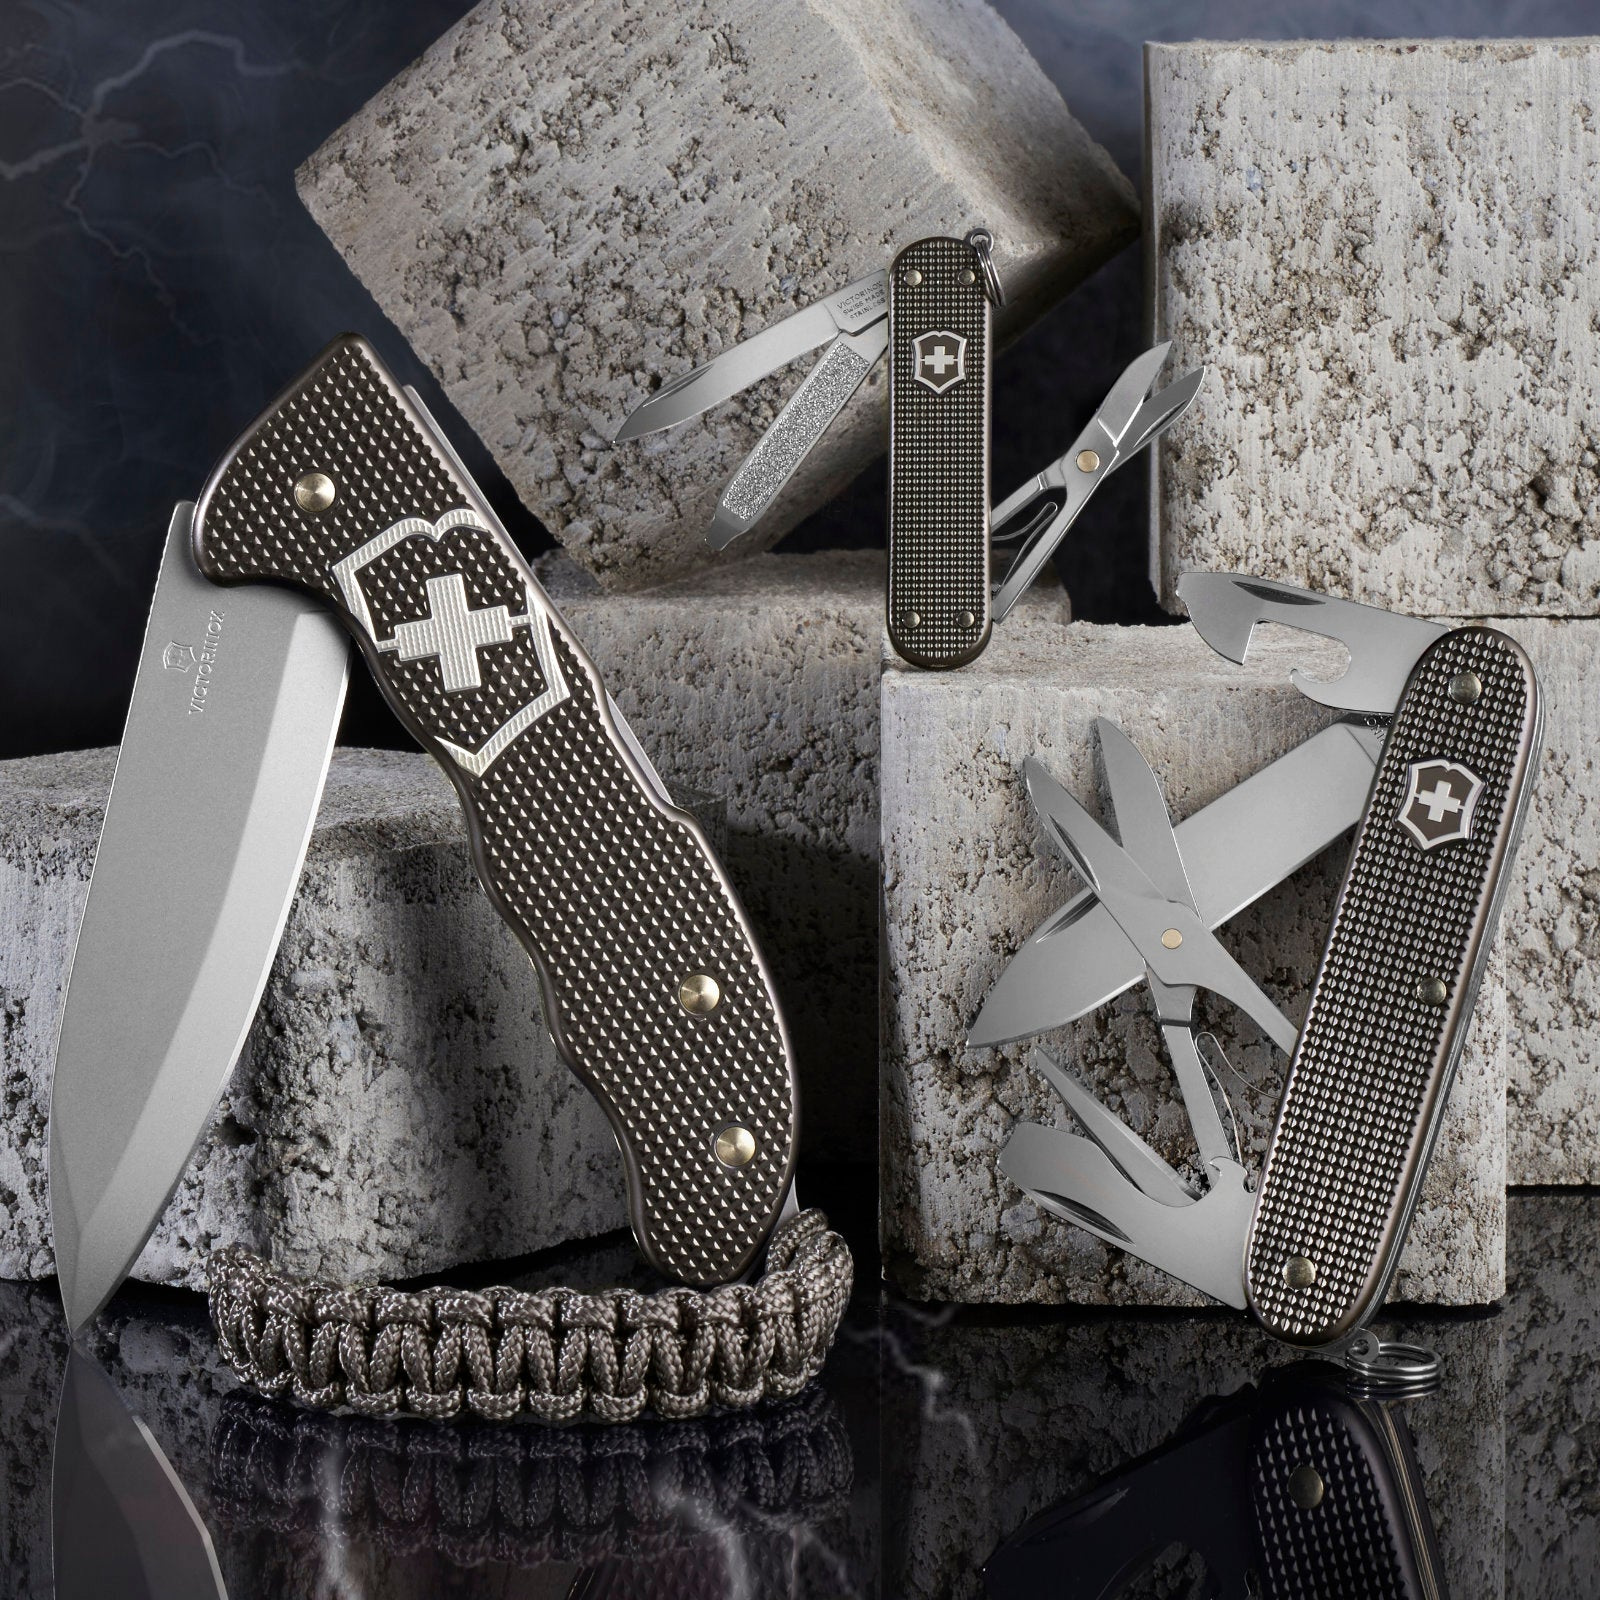 Limited Edition Alox Swiss Army Knives by Victorinox